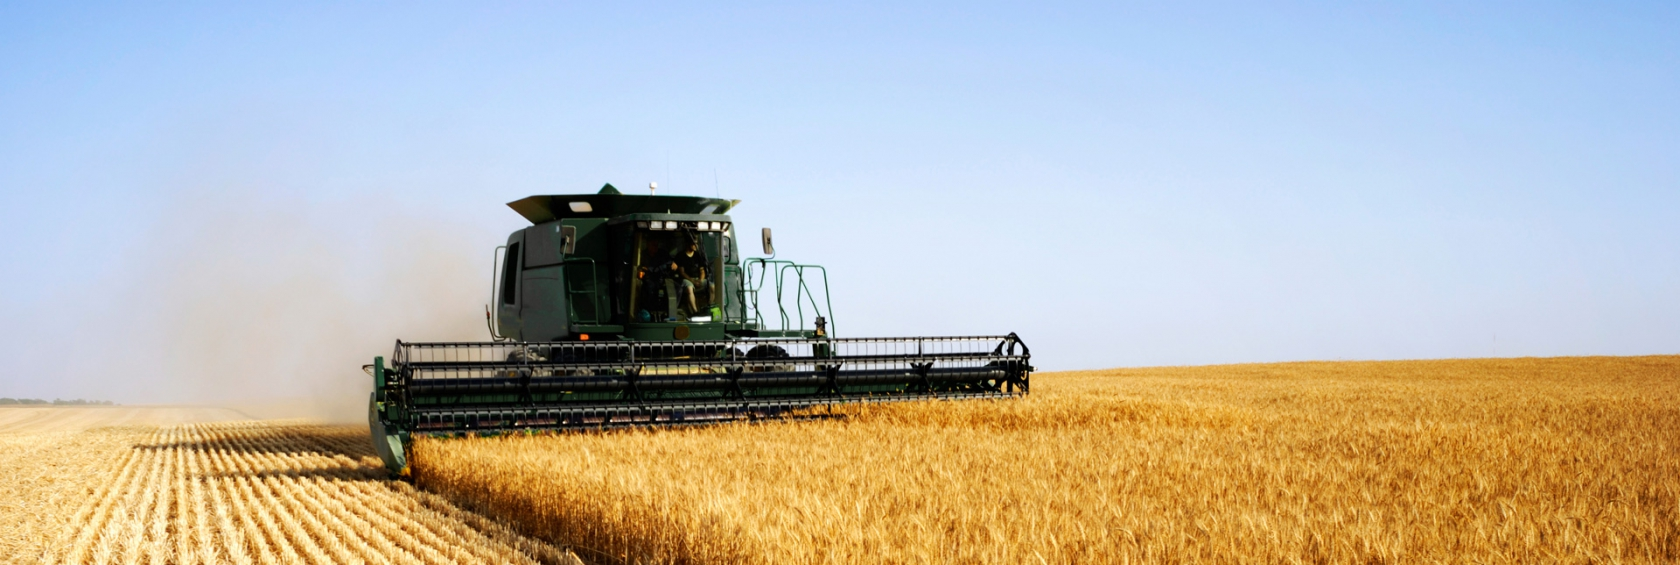 Farmer harvesting crop with combine